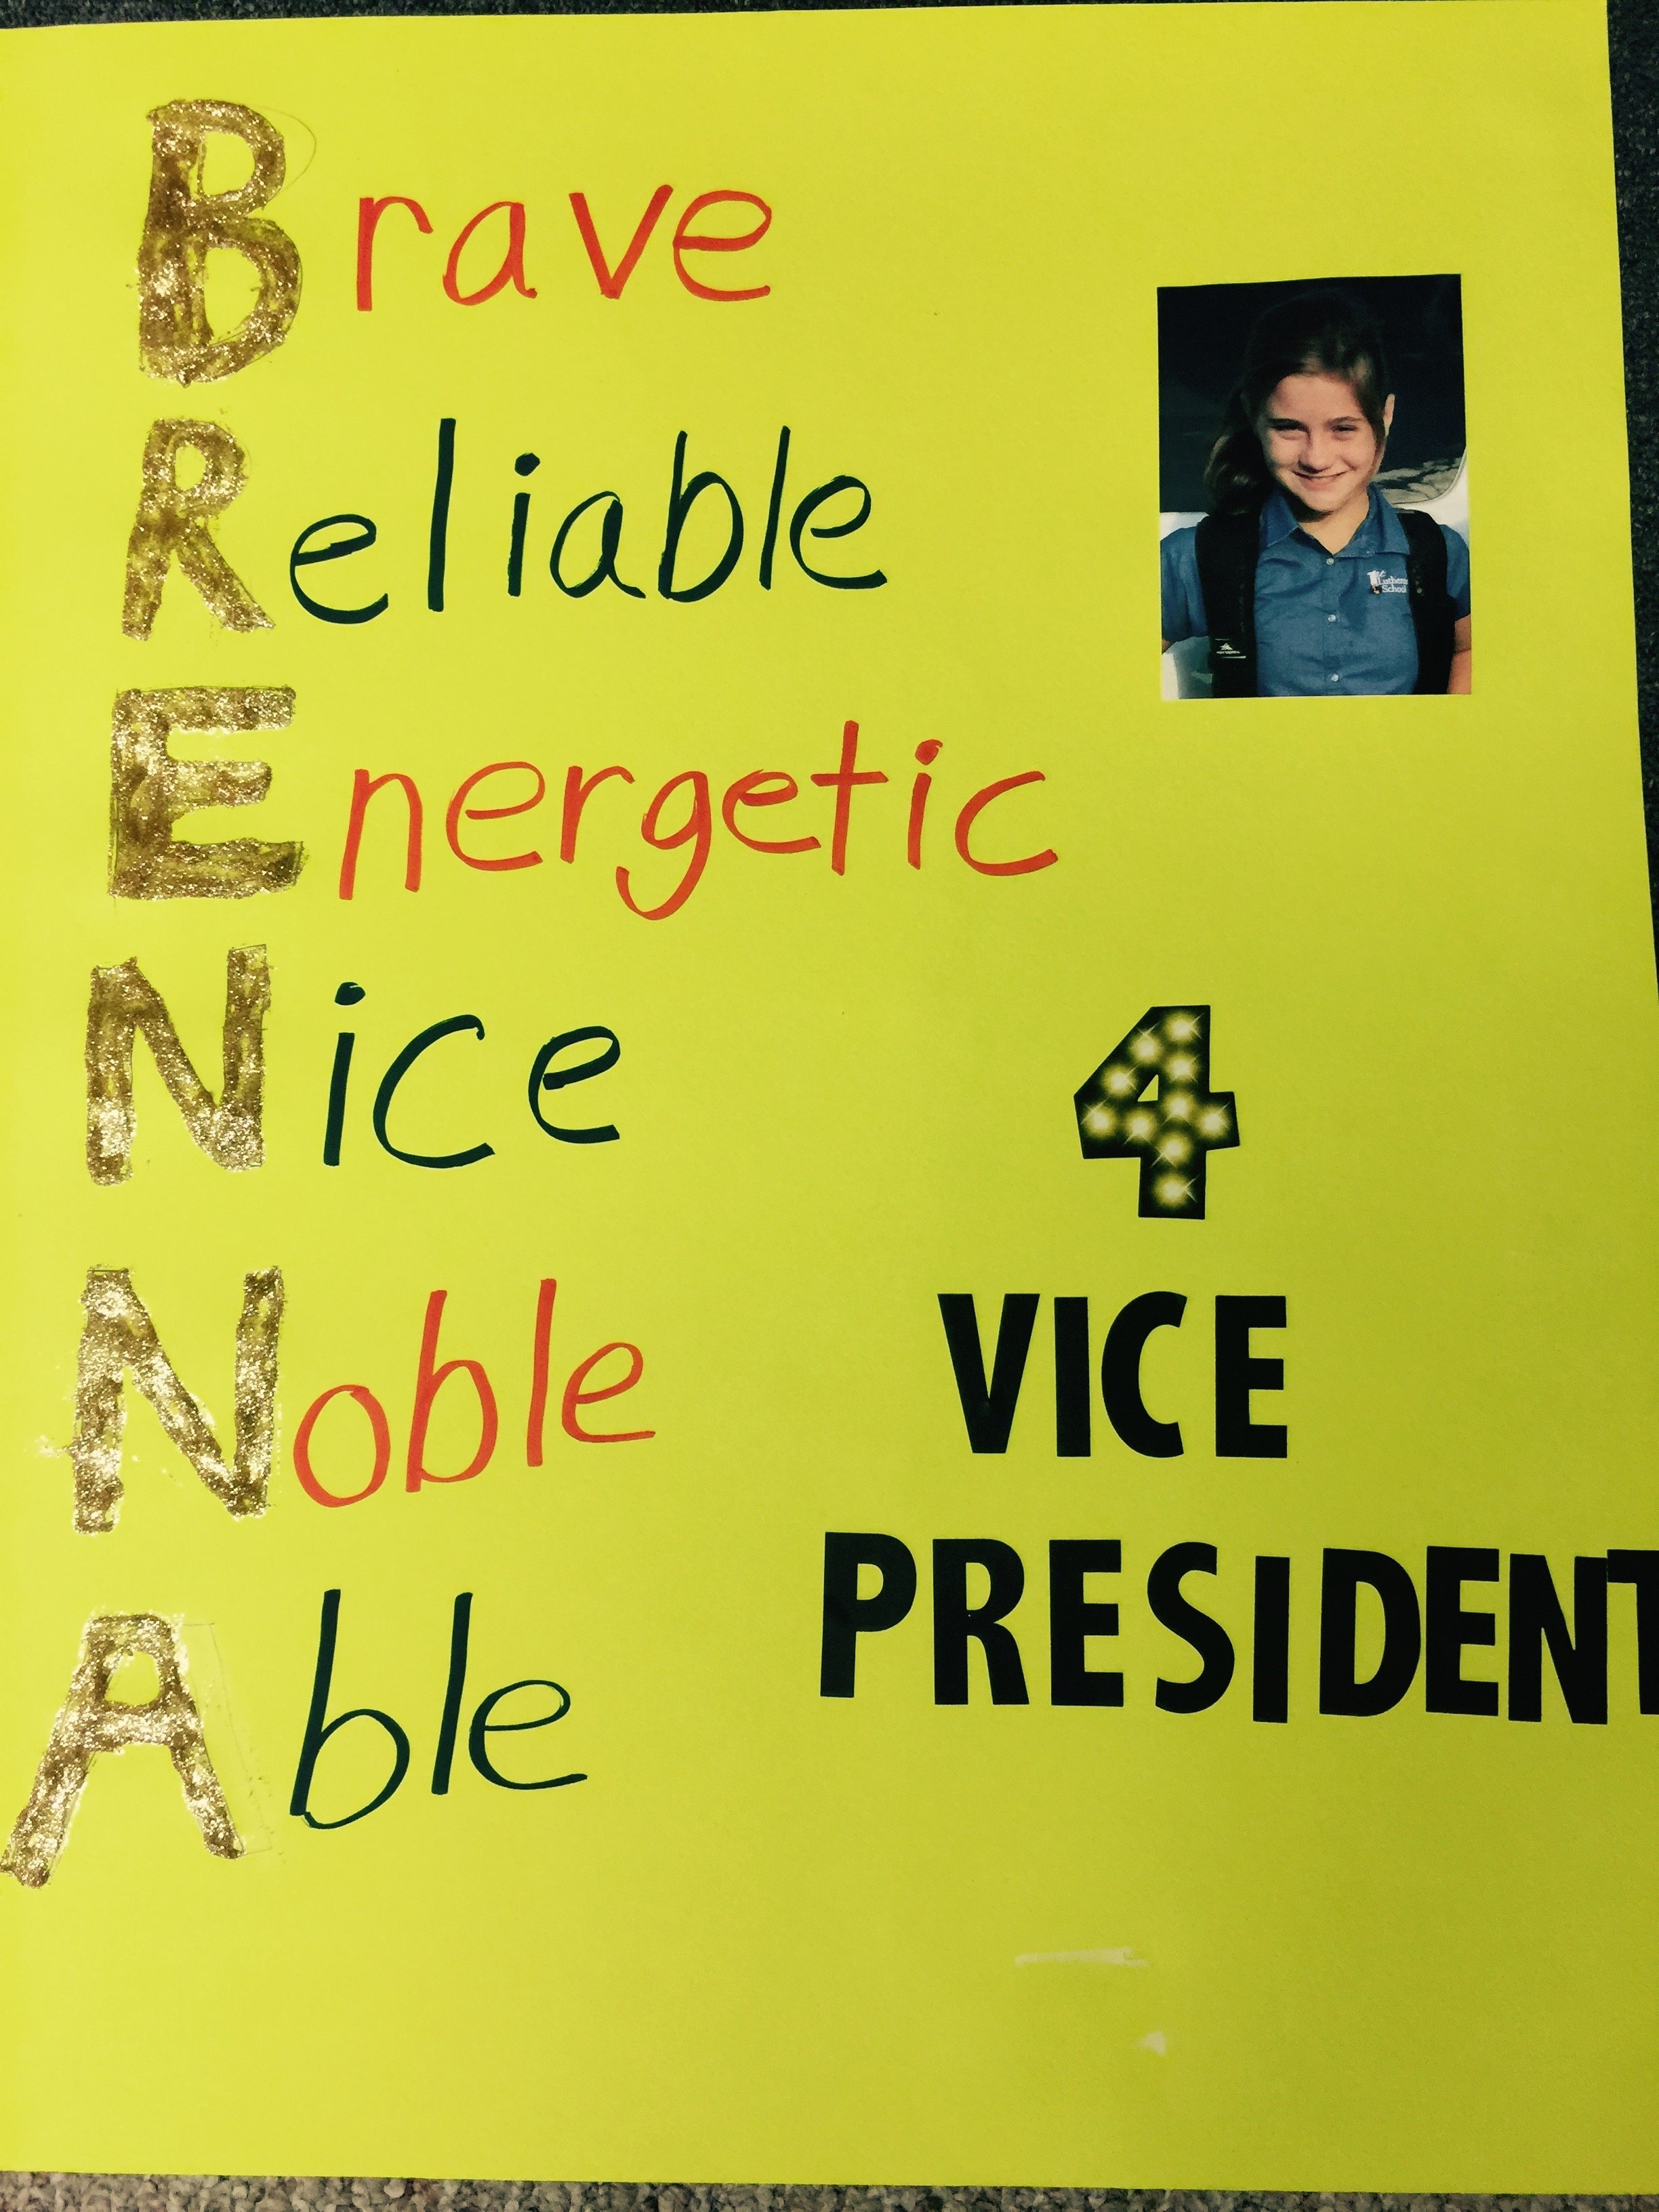 10 Fabulous Student Council Ideas For Elementary pinlea taylor on elementary school student council election 2 2021